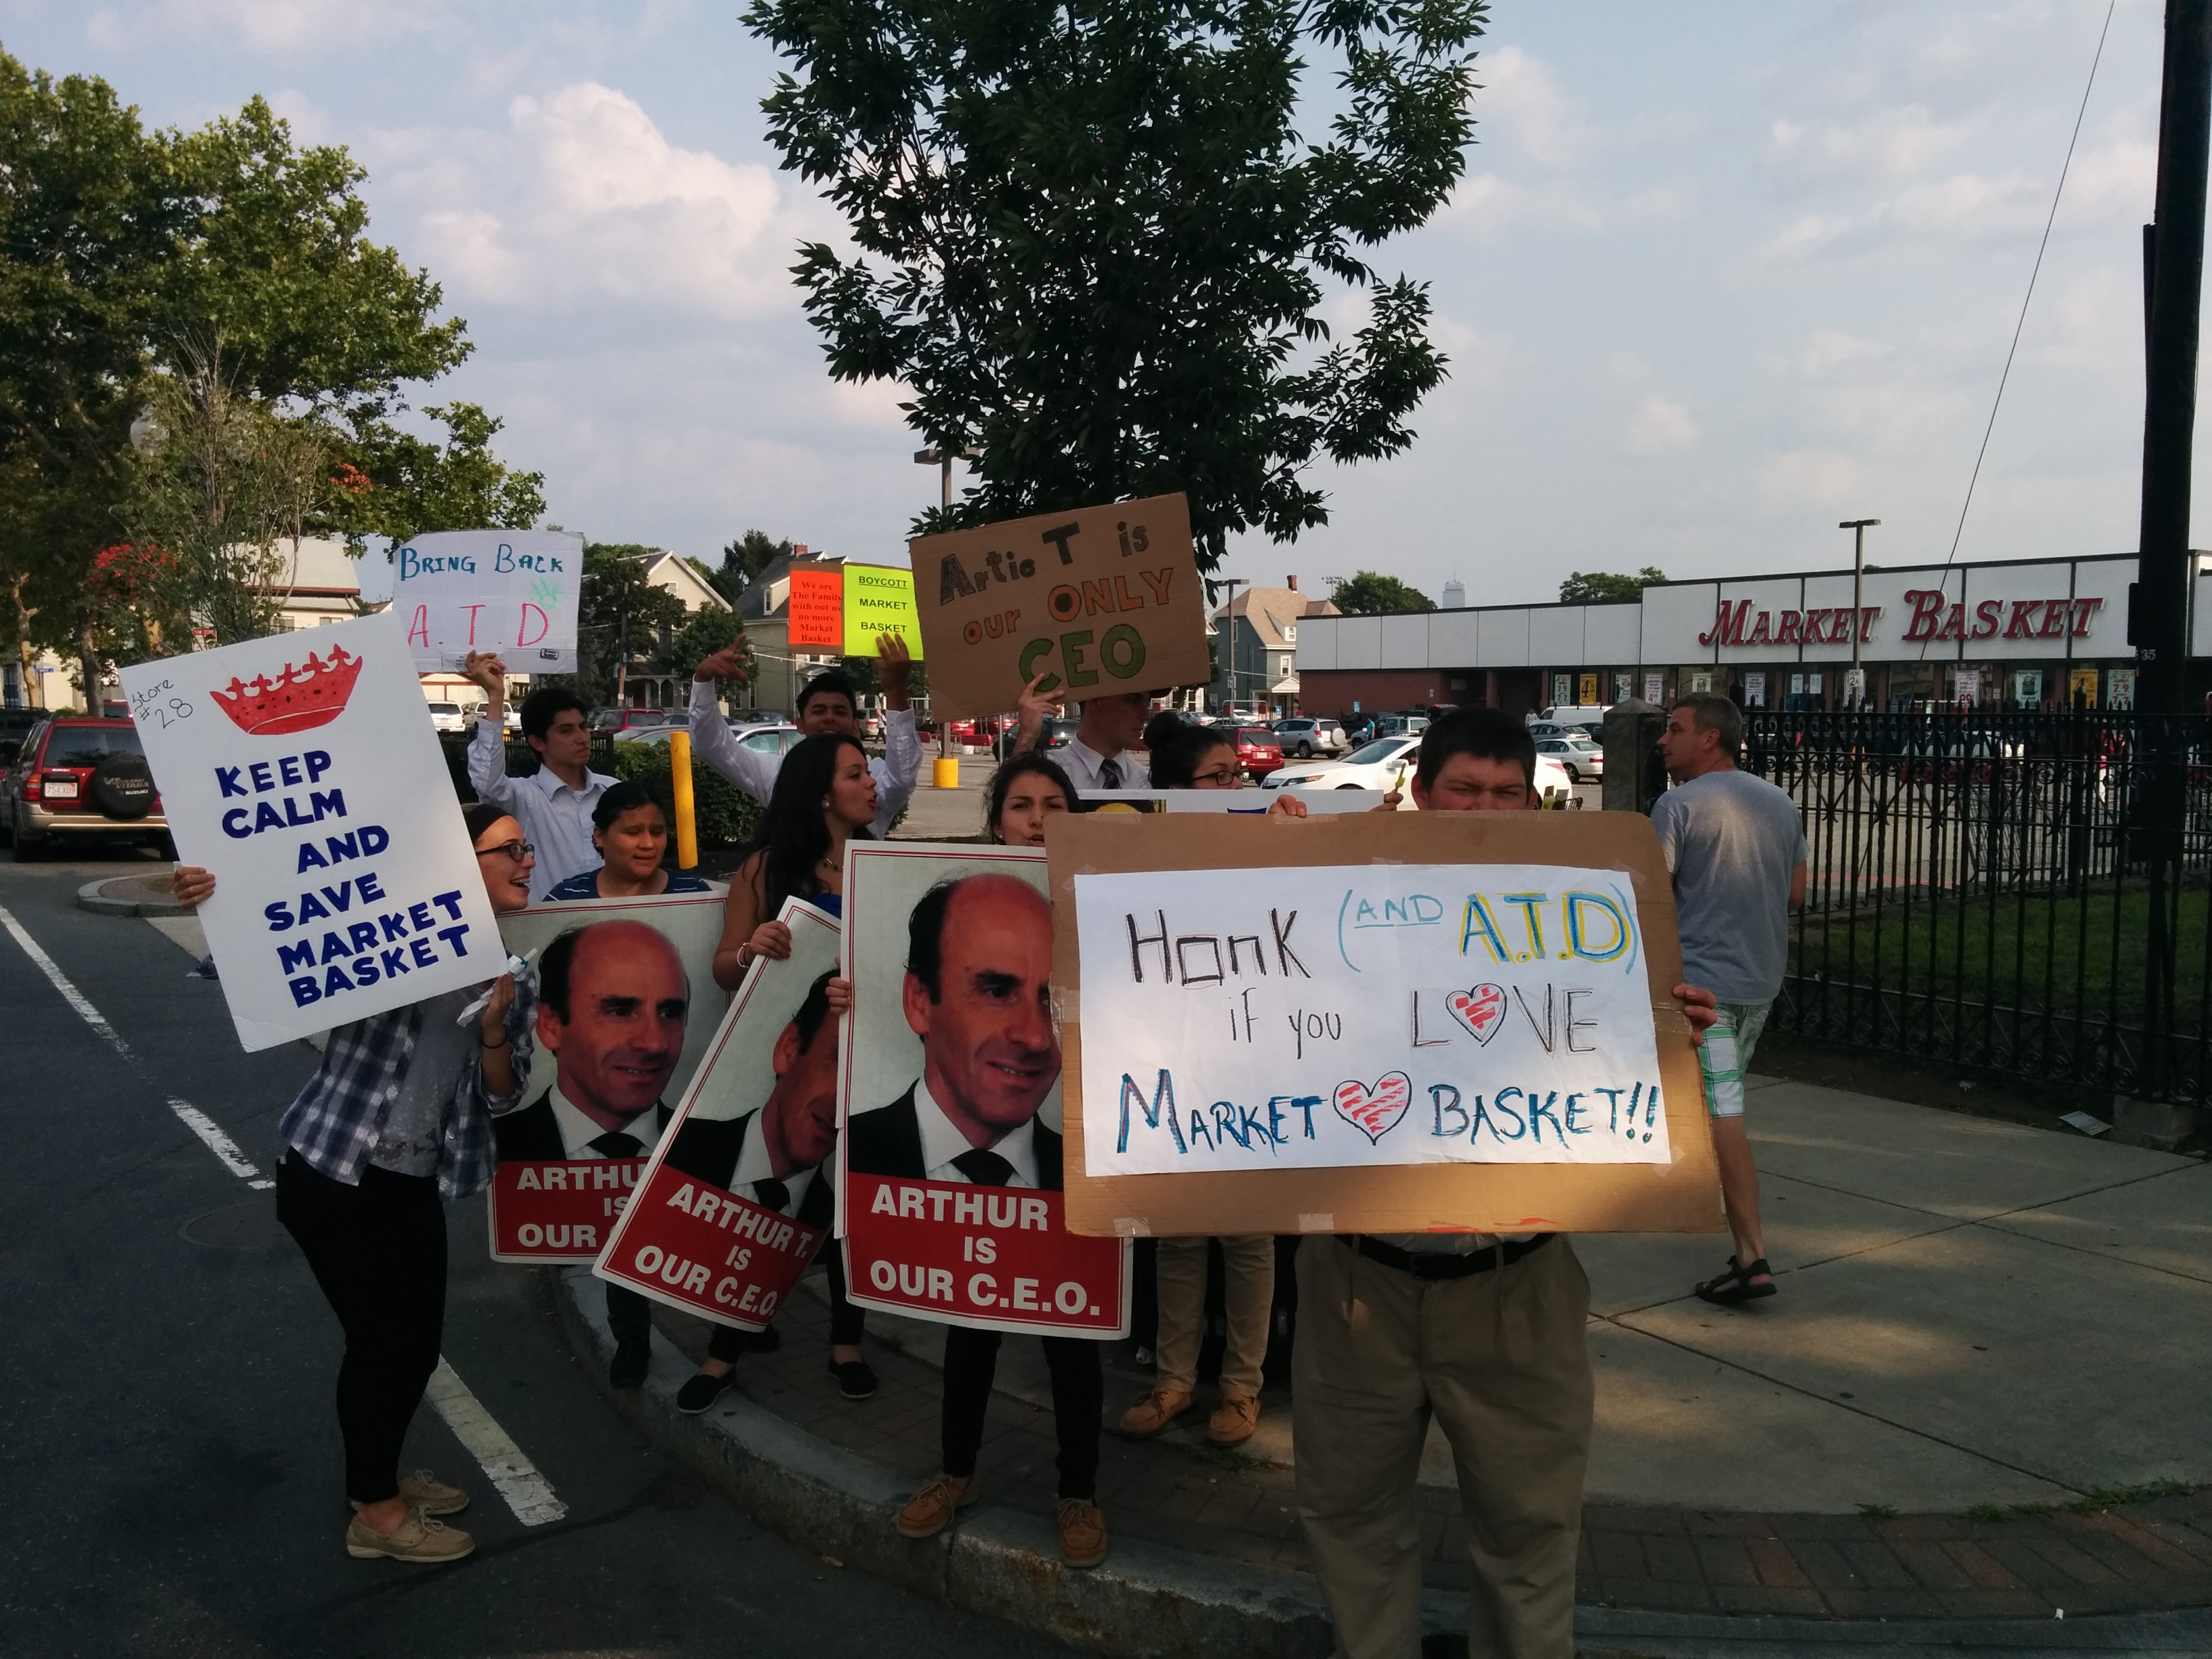 marketbasket-somerville.jpg